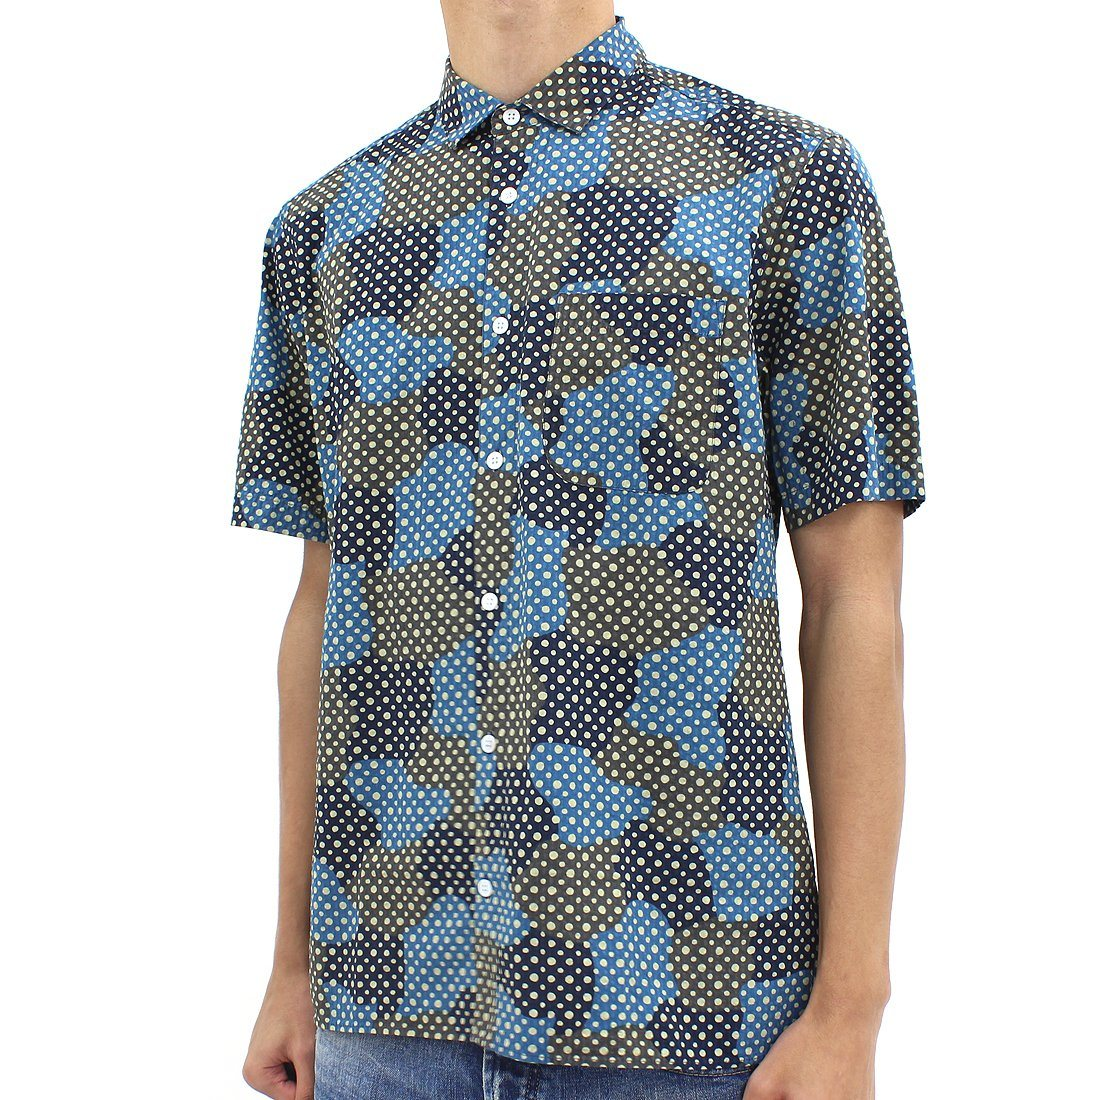 YMC Polka Dot Cloud Shirt Blue